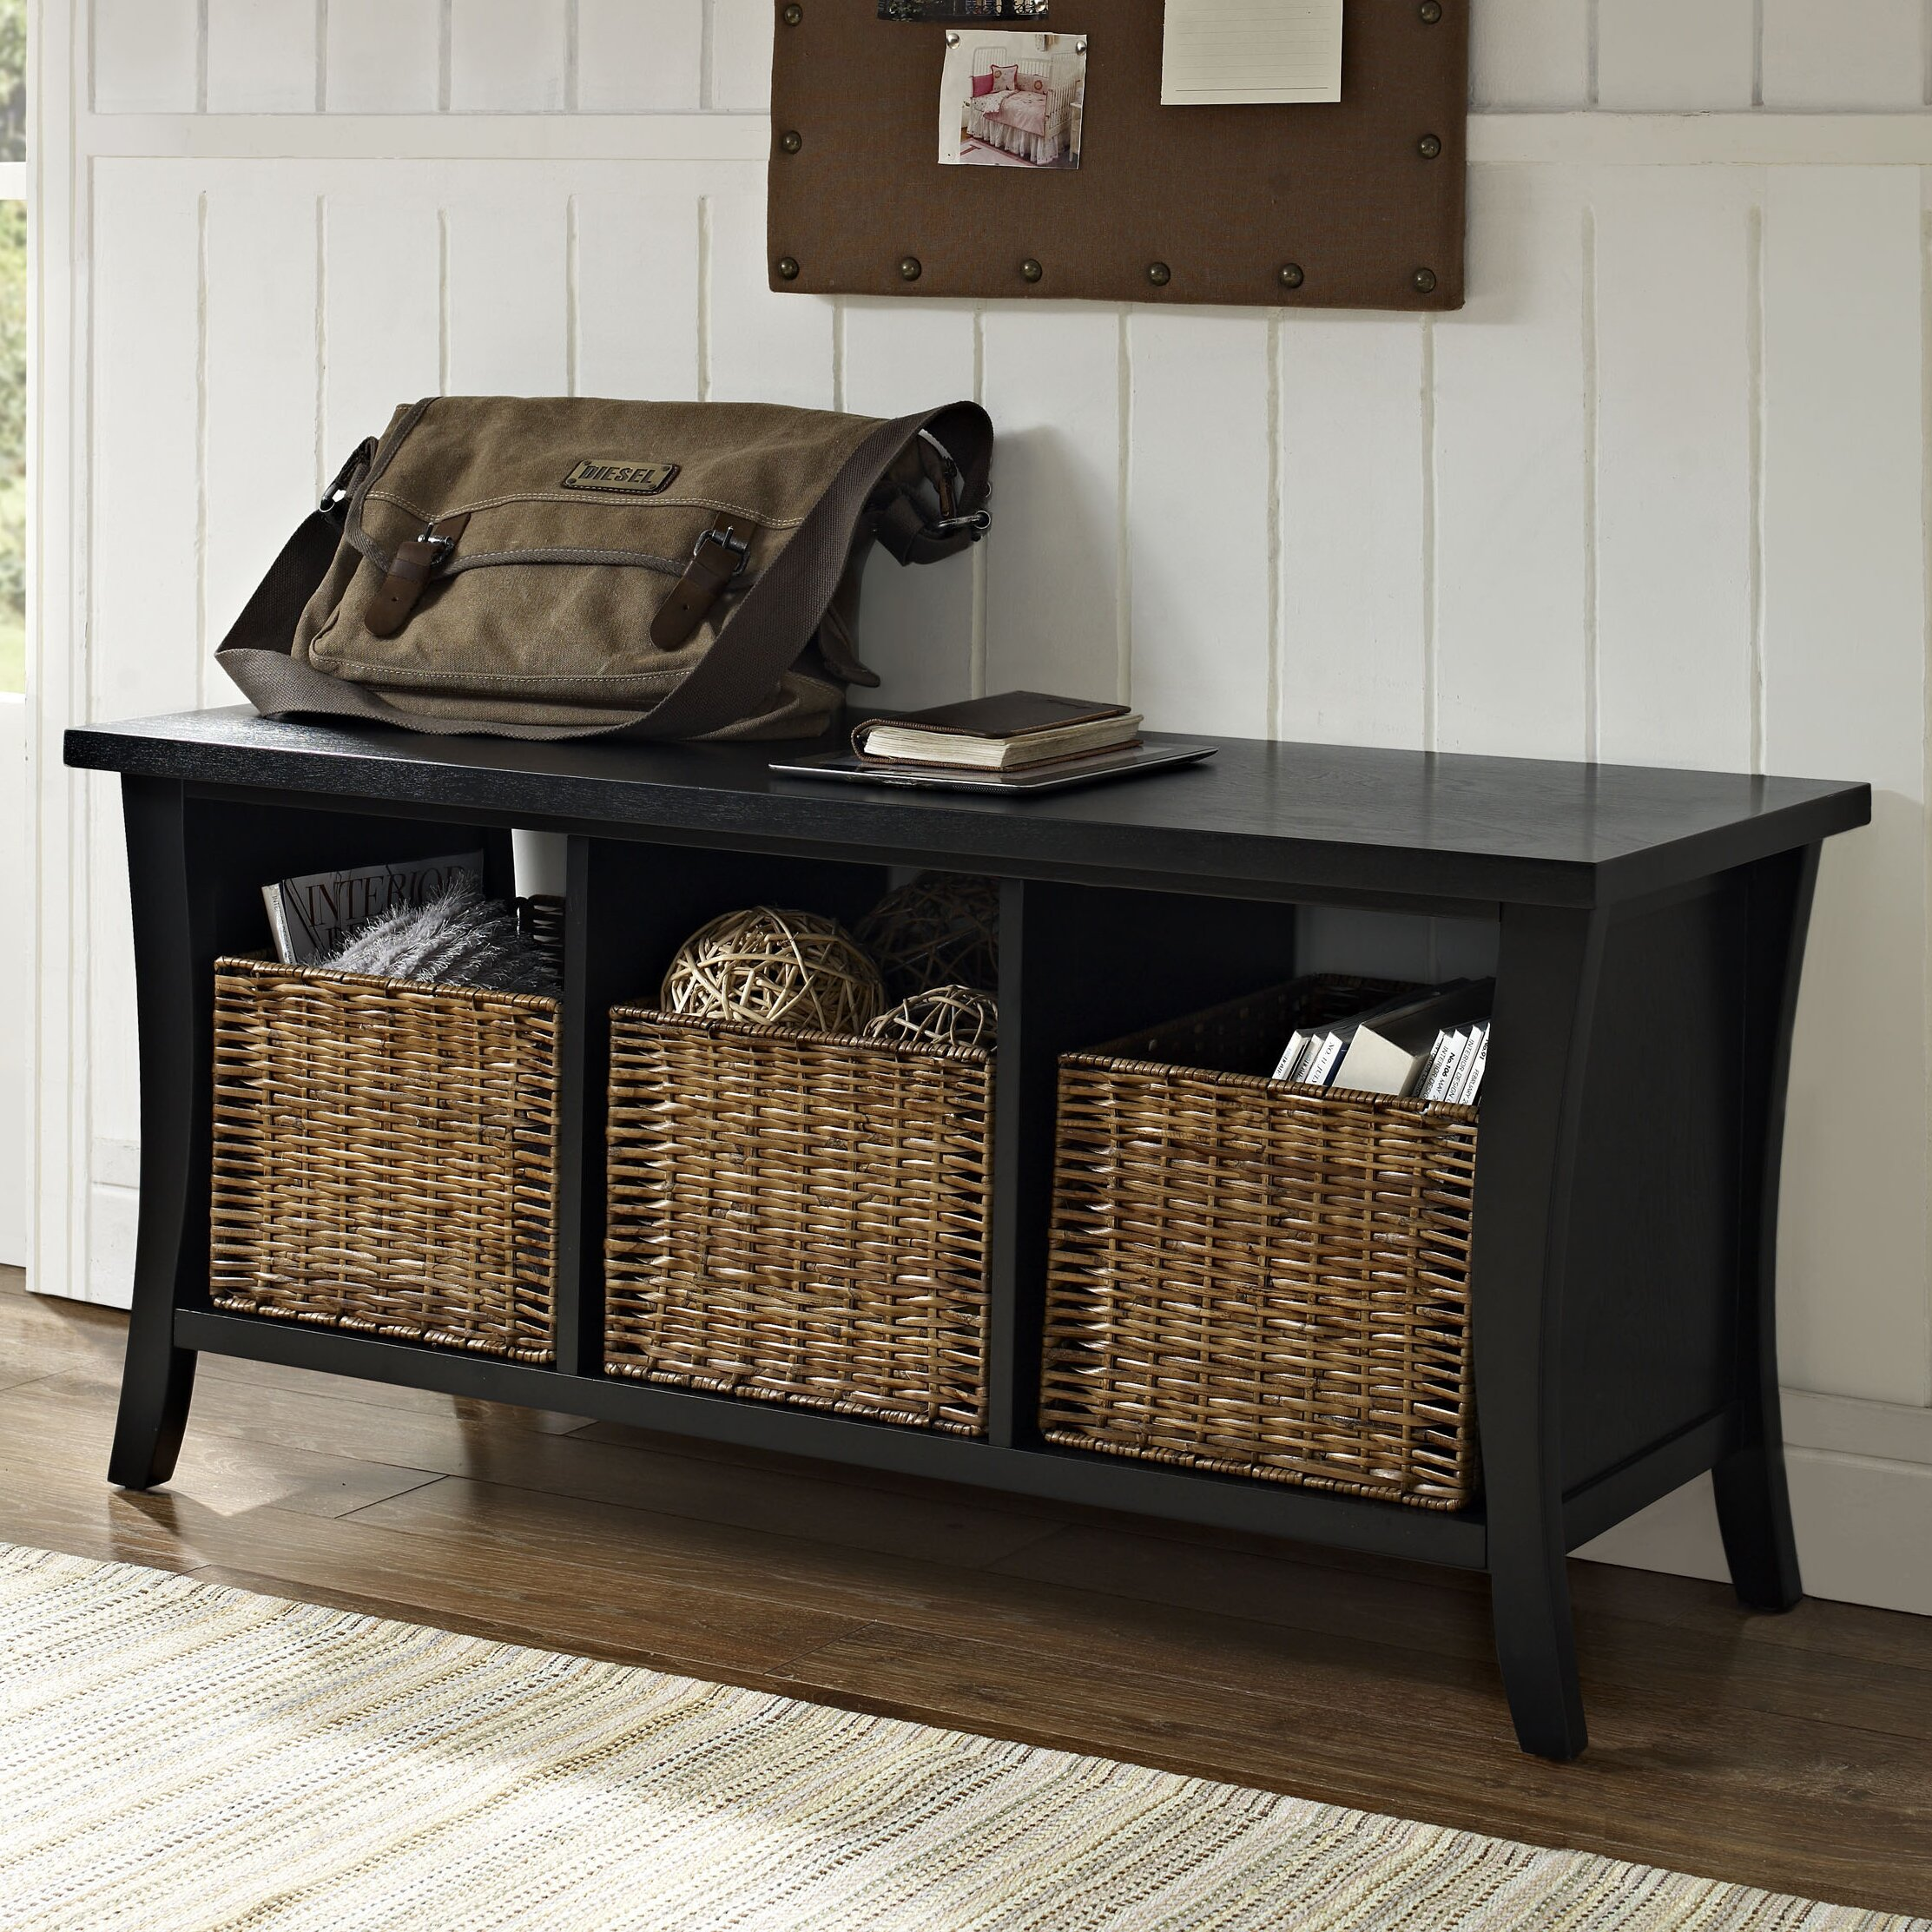 Foyer Mudroom Review : Beachcrest home lewisetta entryway storage bench reviews